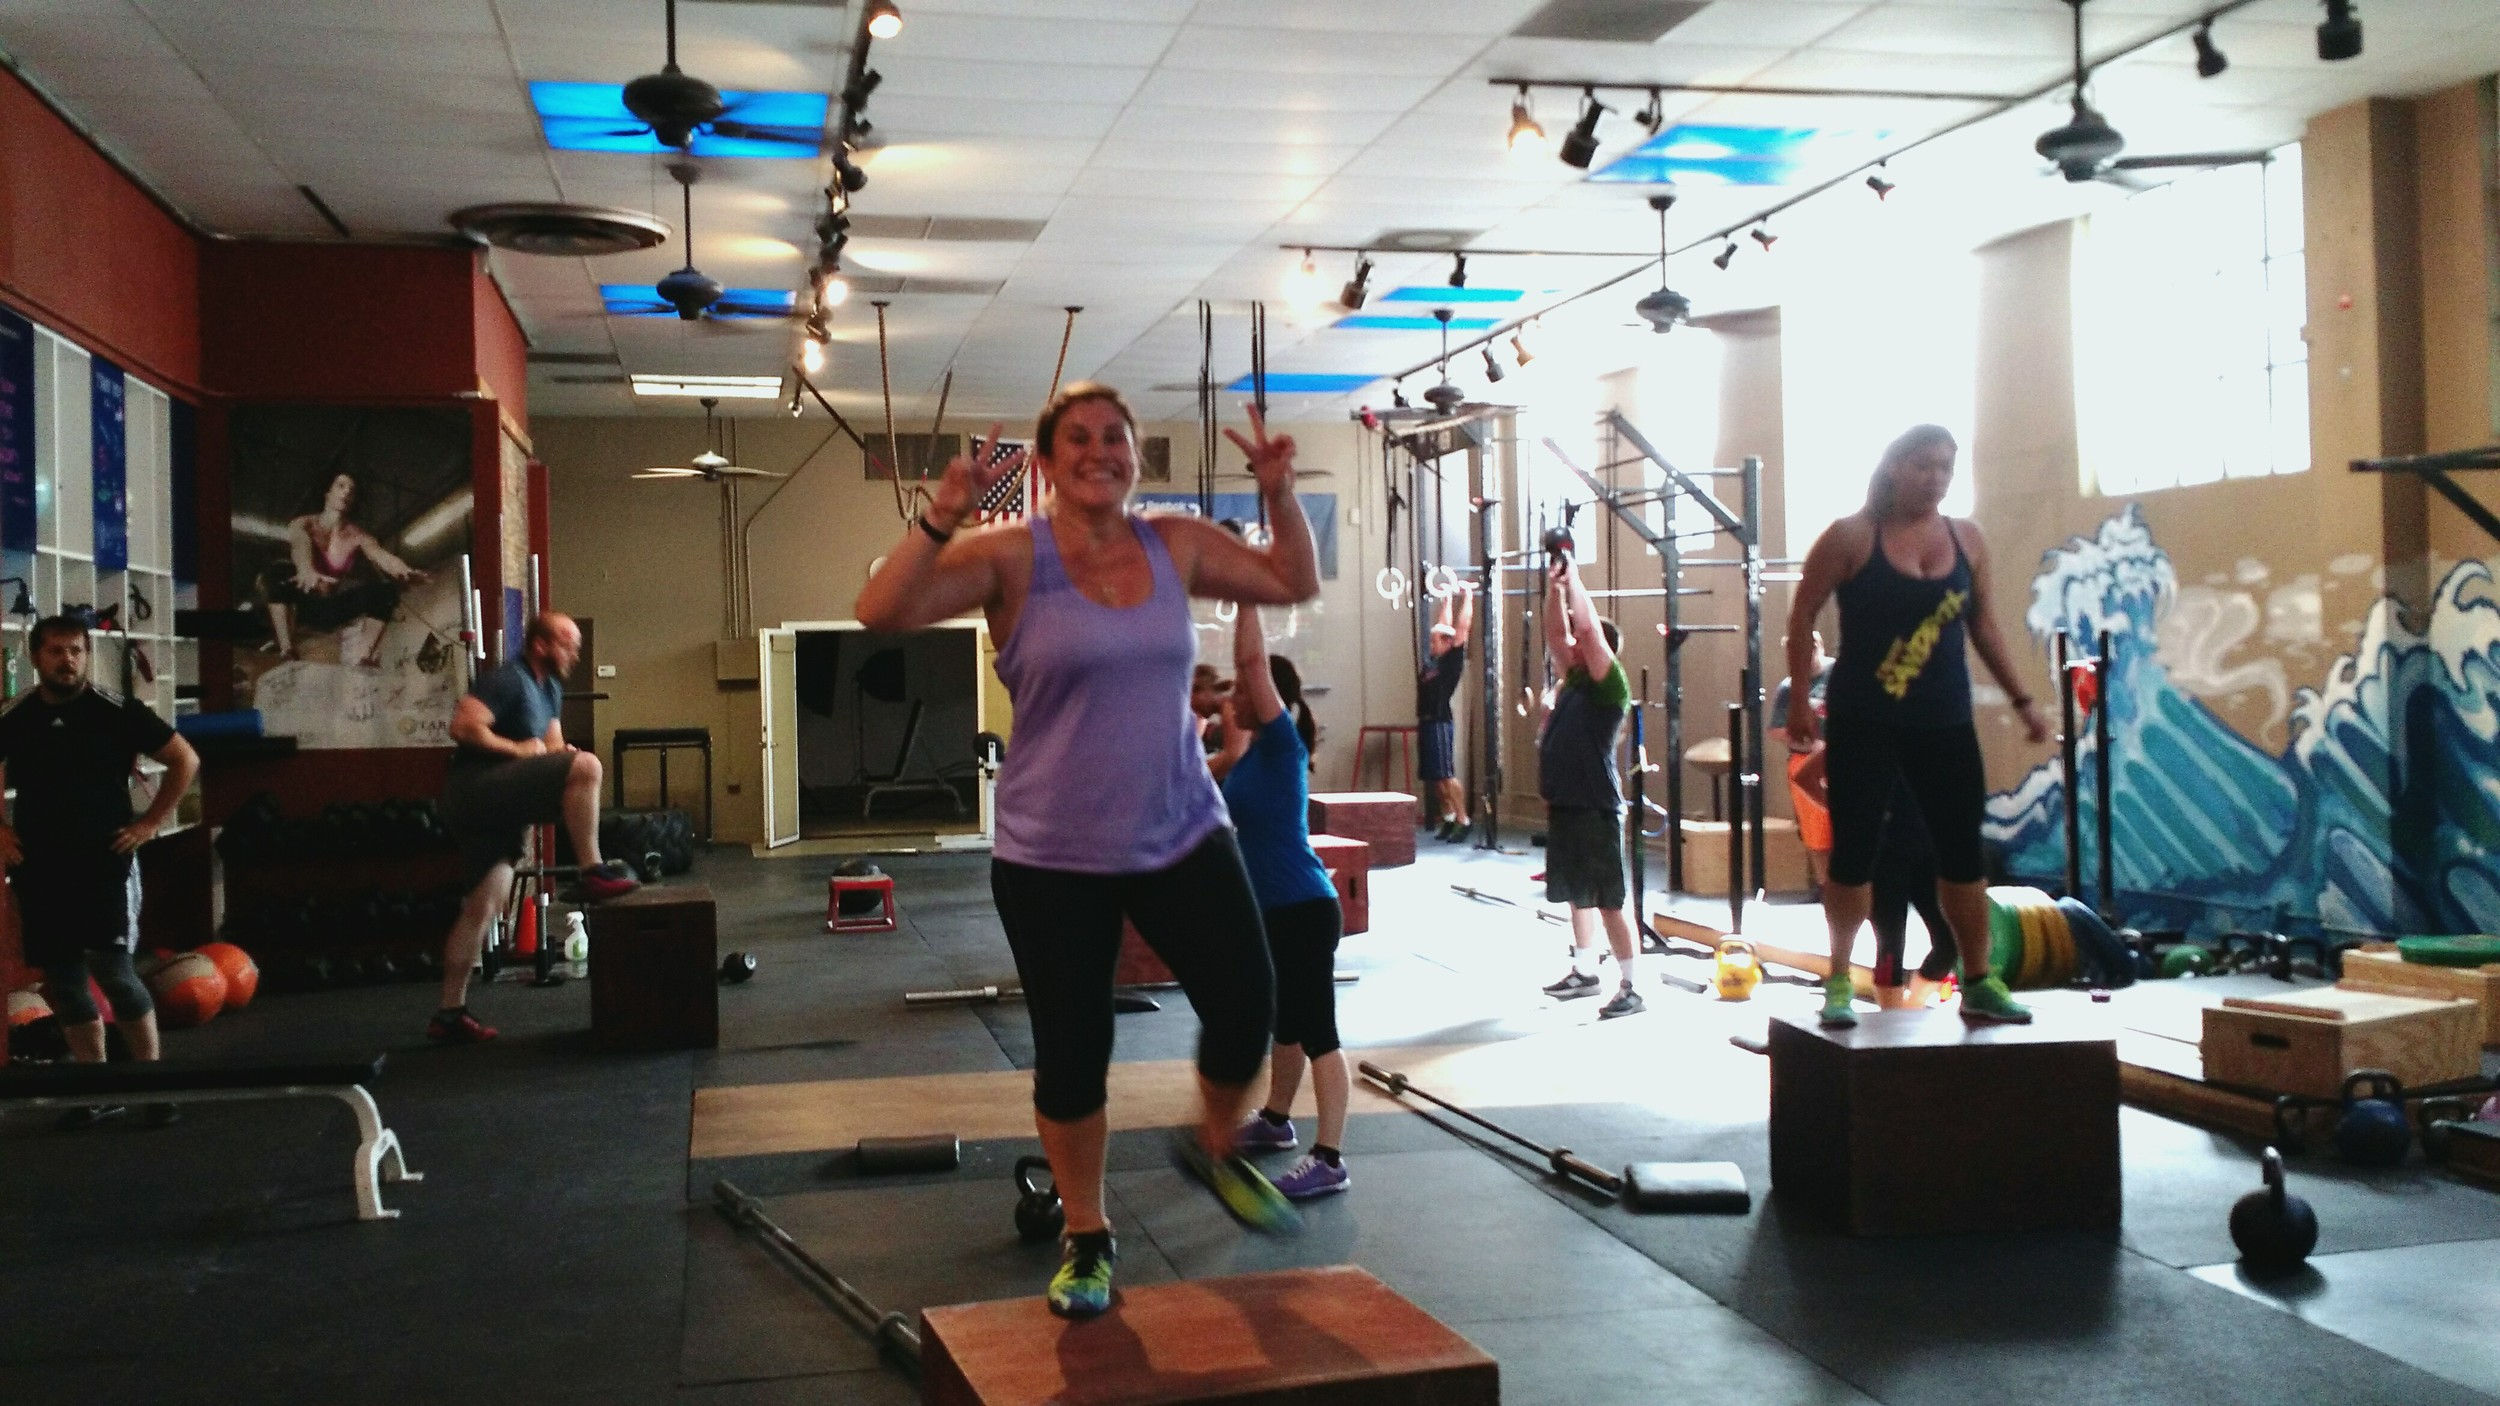 Welcometo CrossFit Silicon Valley Bre! She is super cool and ultra fun to coach. She has some CrossFit experience and she enjoys the no frills, snake oil free, positive box environment that CFSV provides.